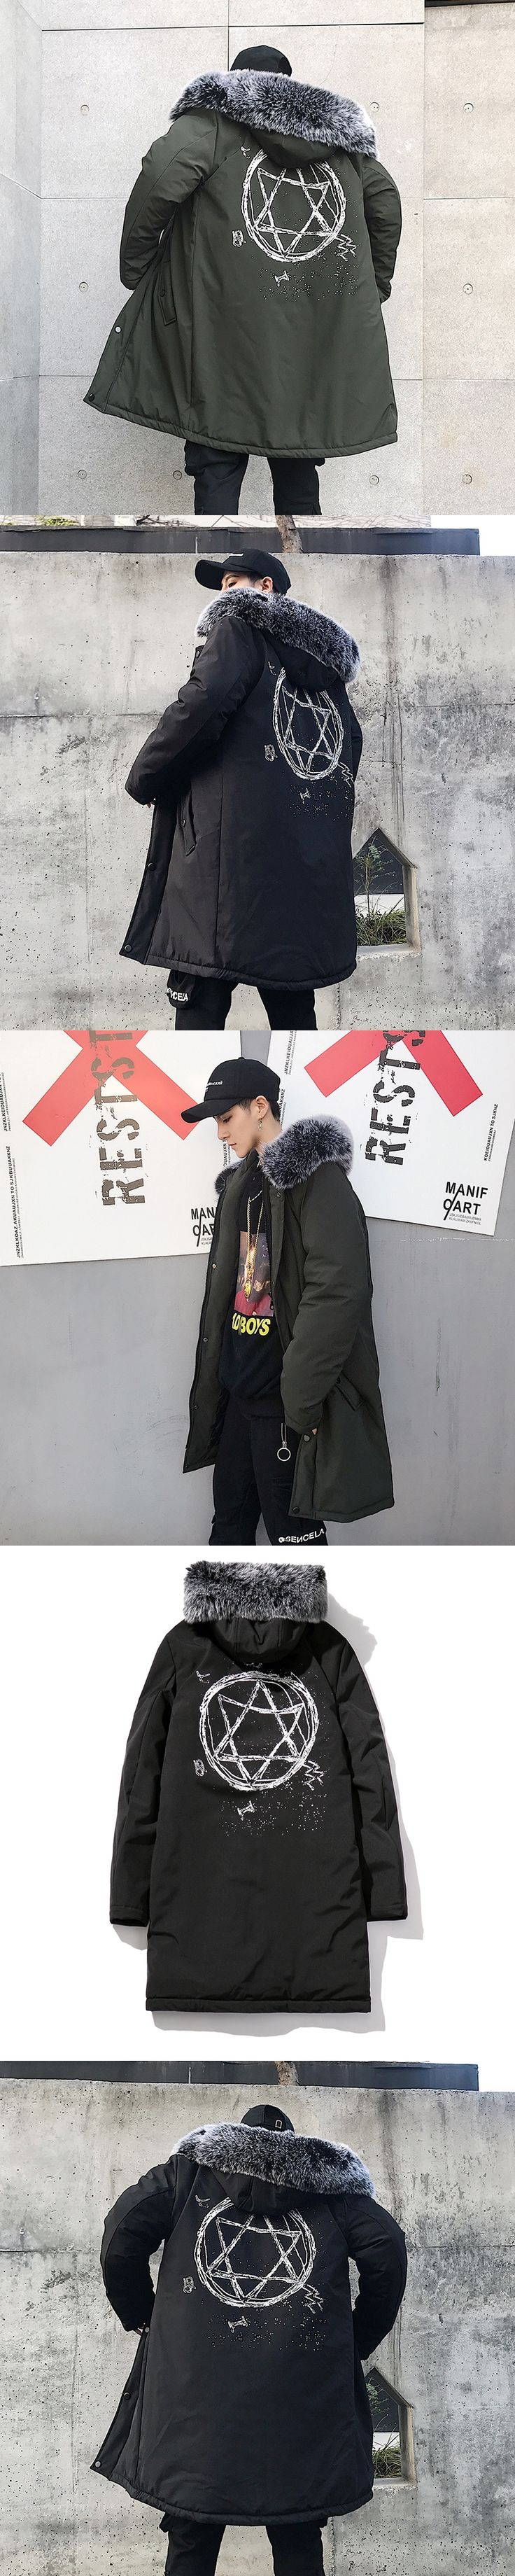 long parka men winter fur collar designer men winter coat jacket manteau hiver homme black green 3xl parka homme fourrure